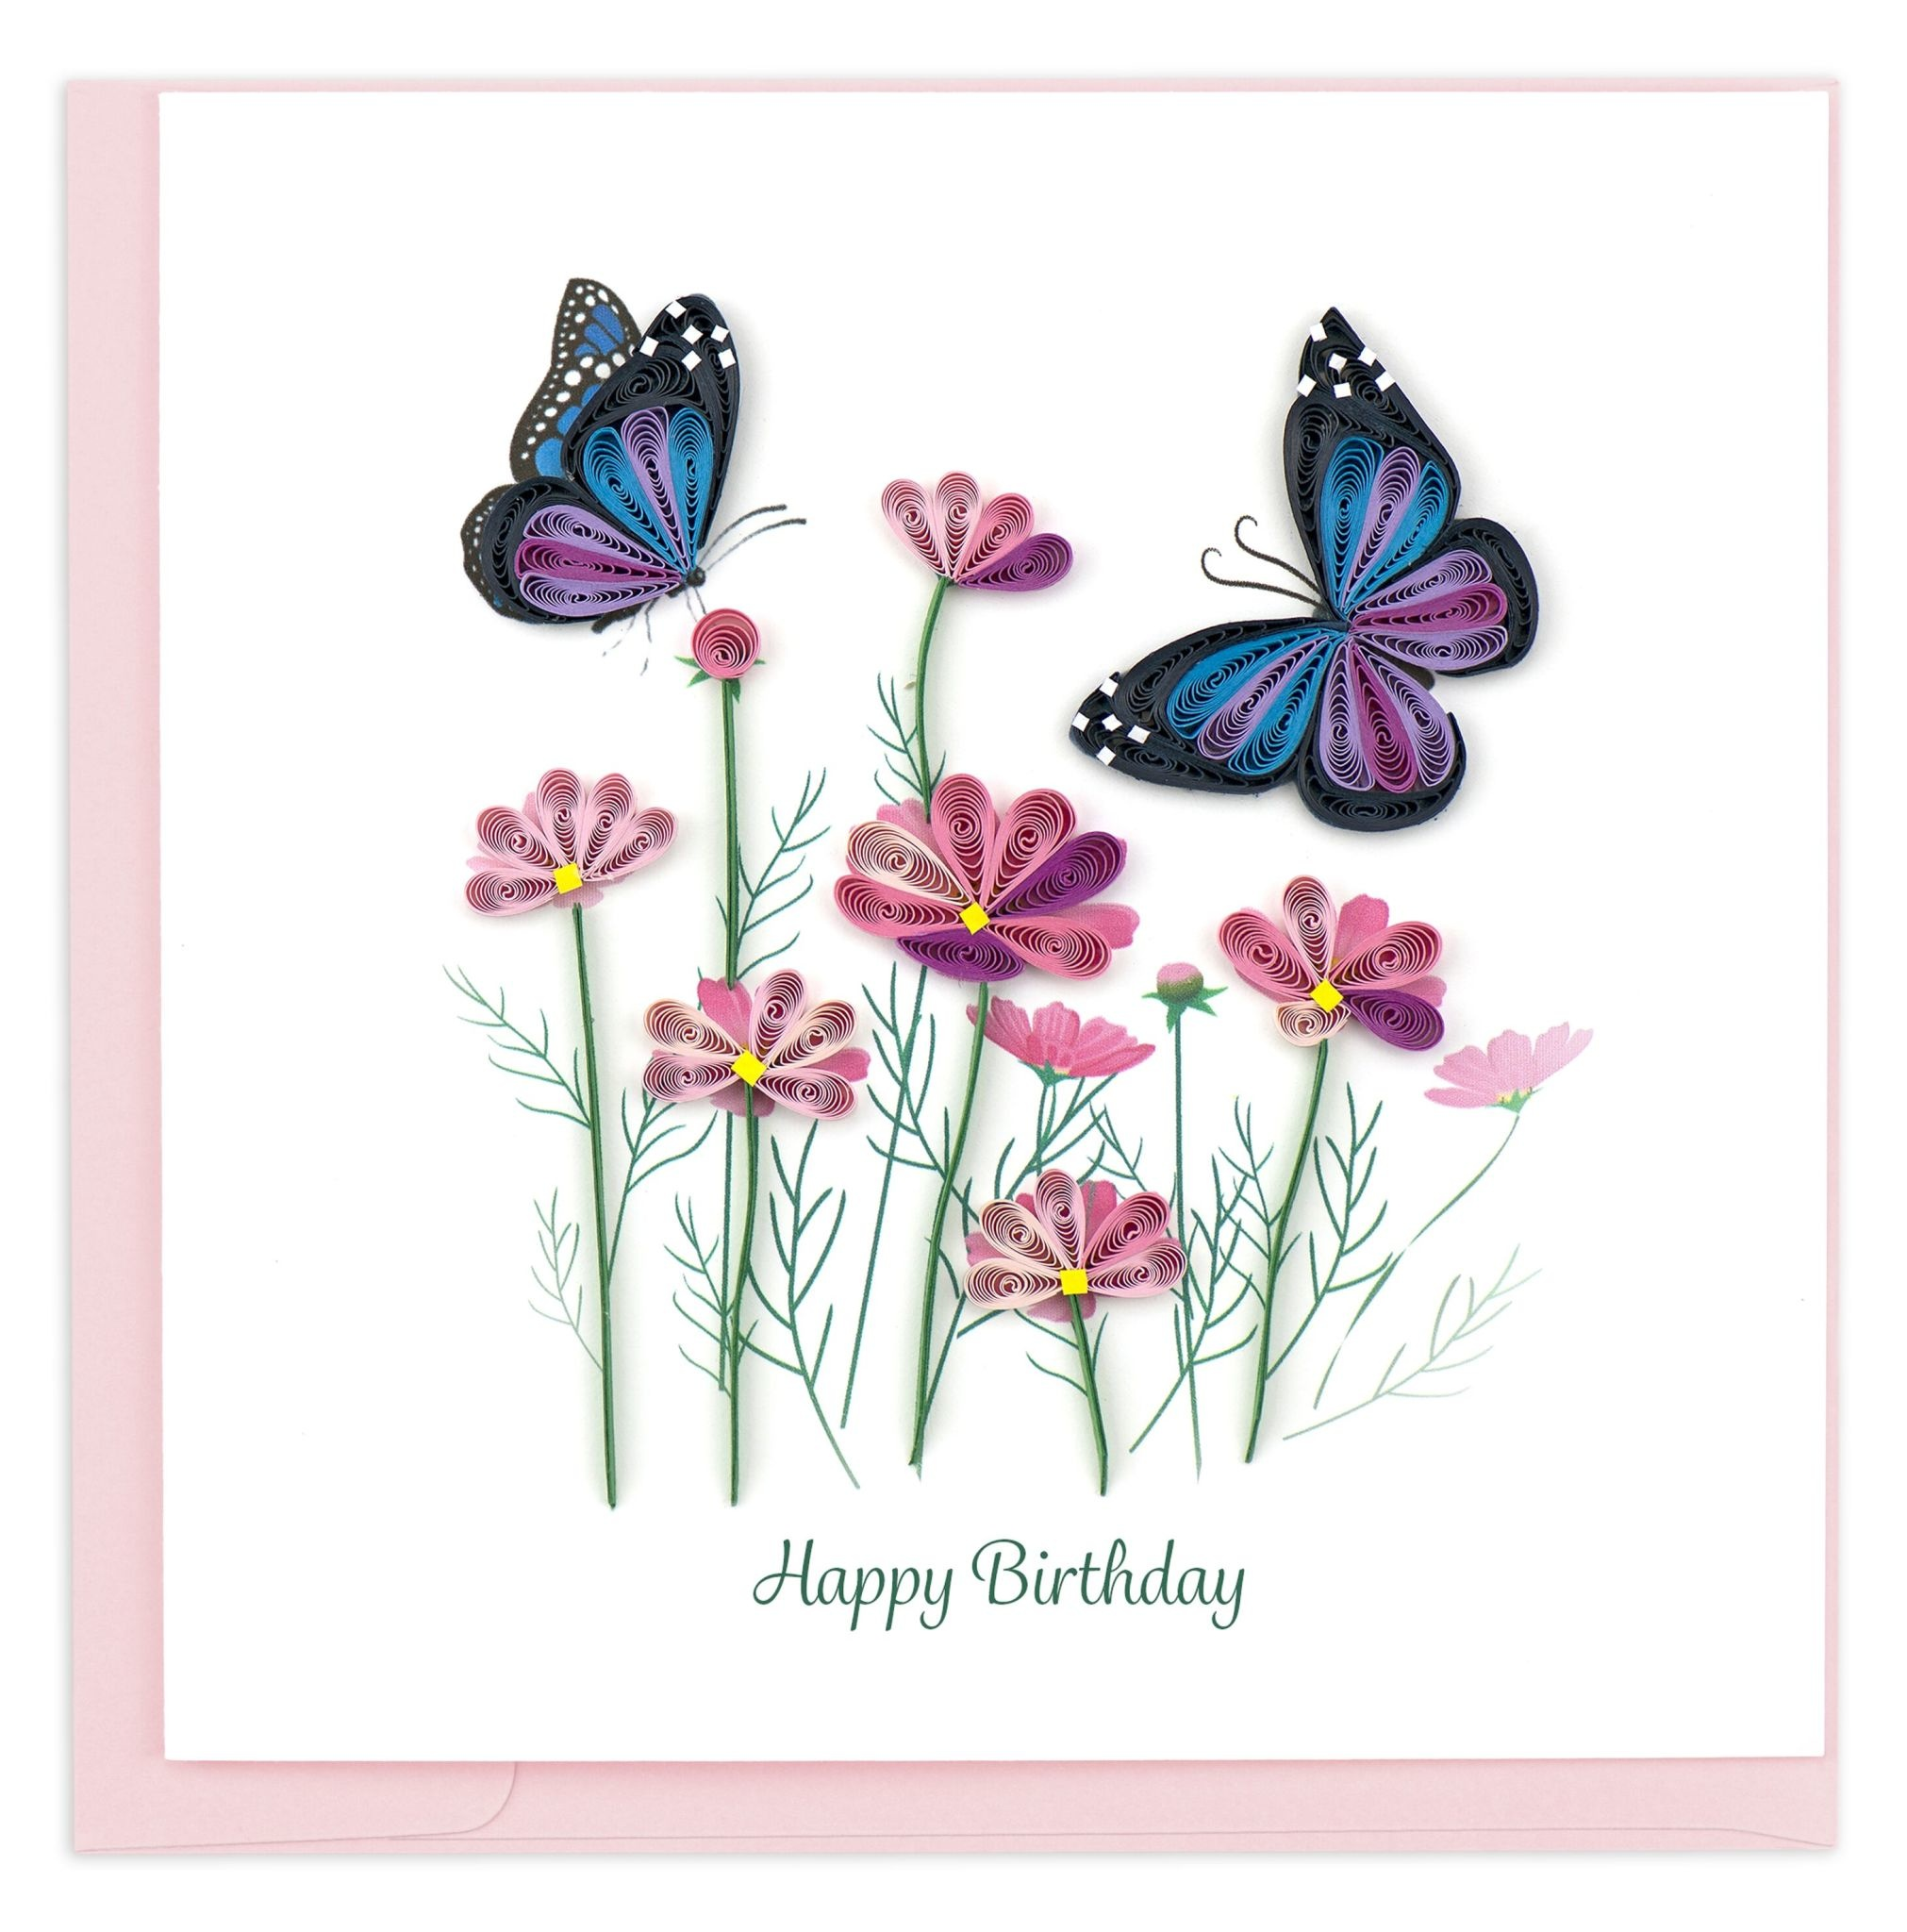 Flowers And Butterflies Quilled Birthday Cards Global Gifts